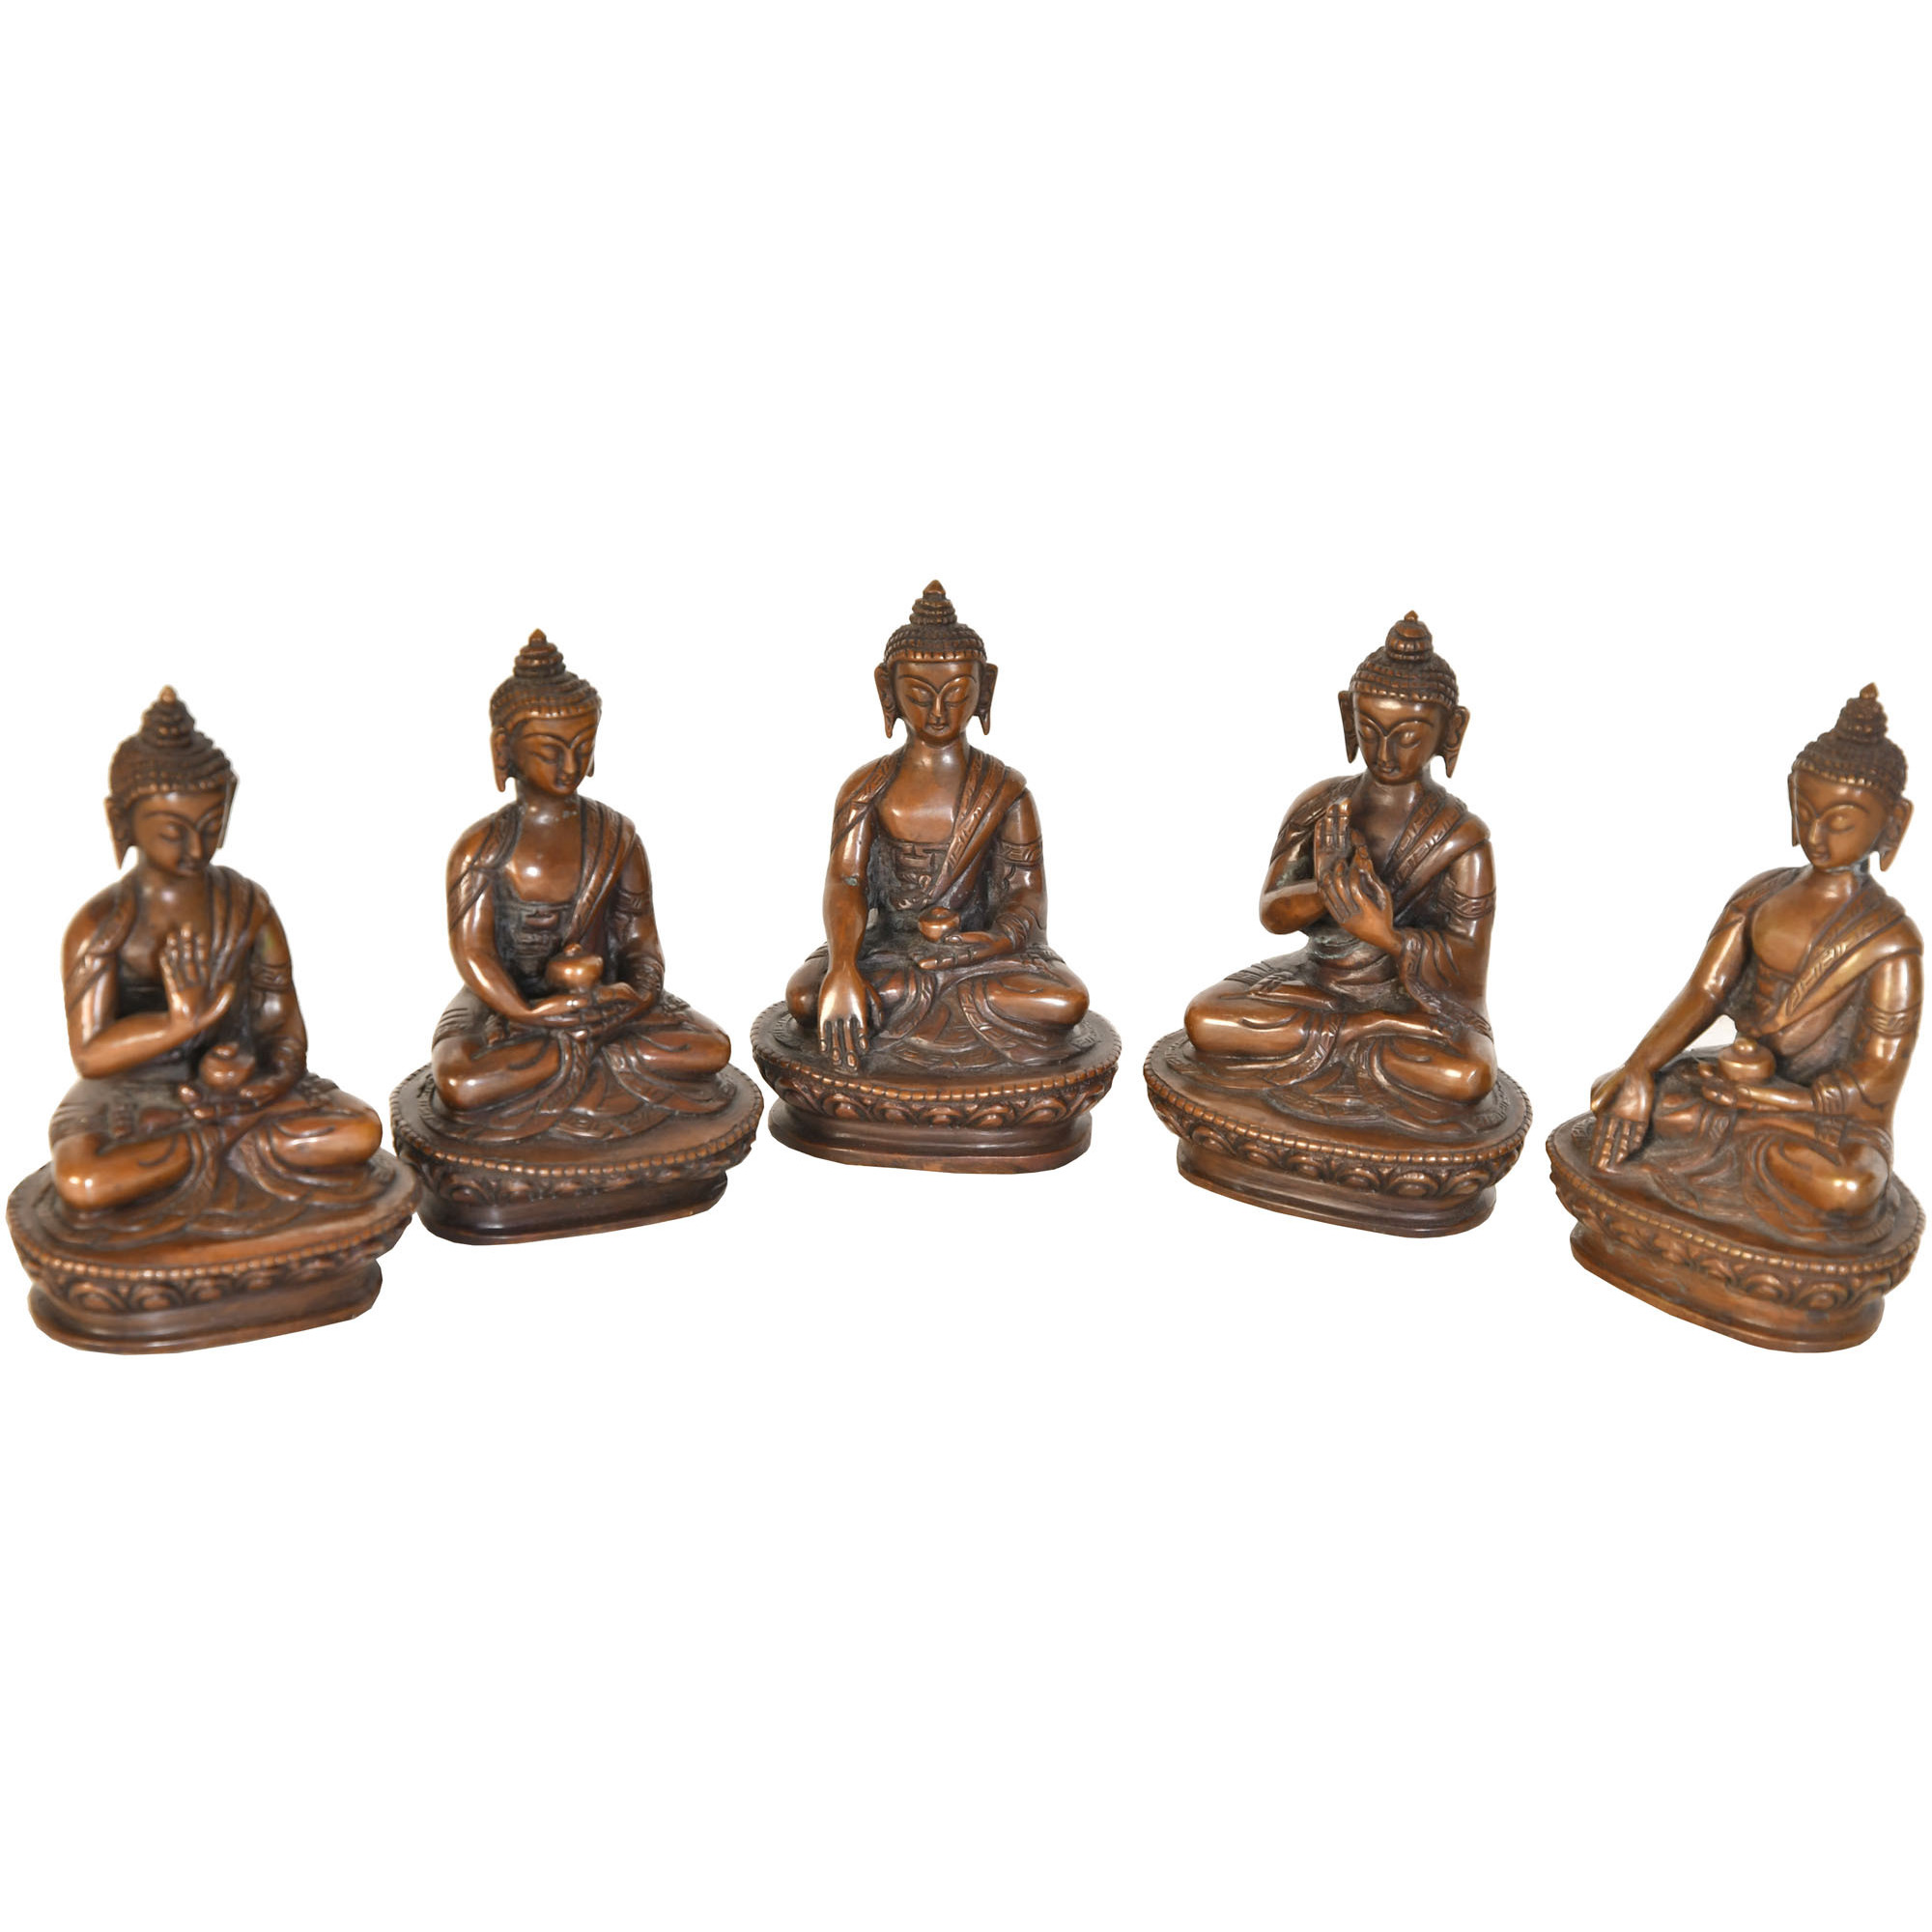 Tibetan Buddhist Five Dhyani Buddhas (Made in Nepal)